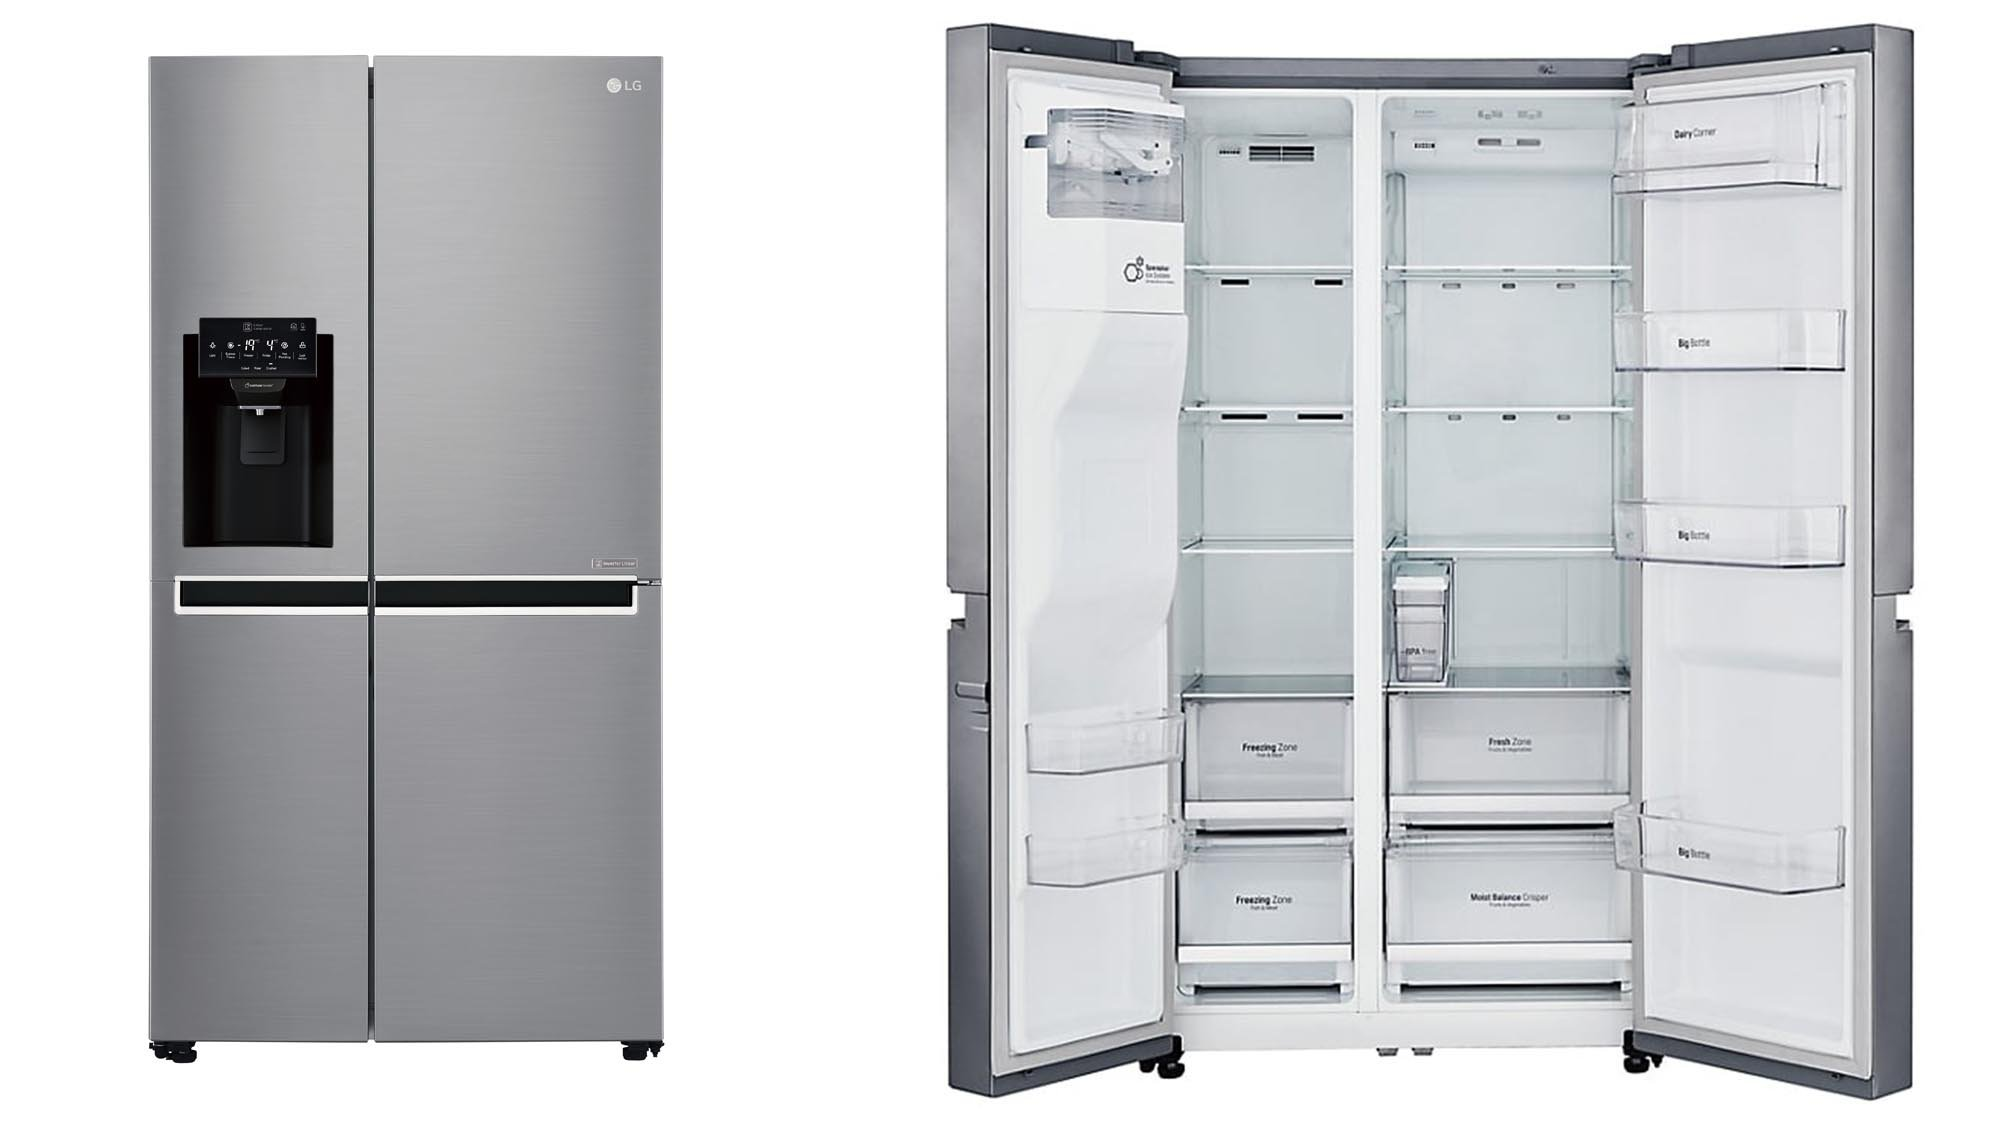 Best Fridge Freezer 2018 The Best Fridge Freezers To Buy